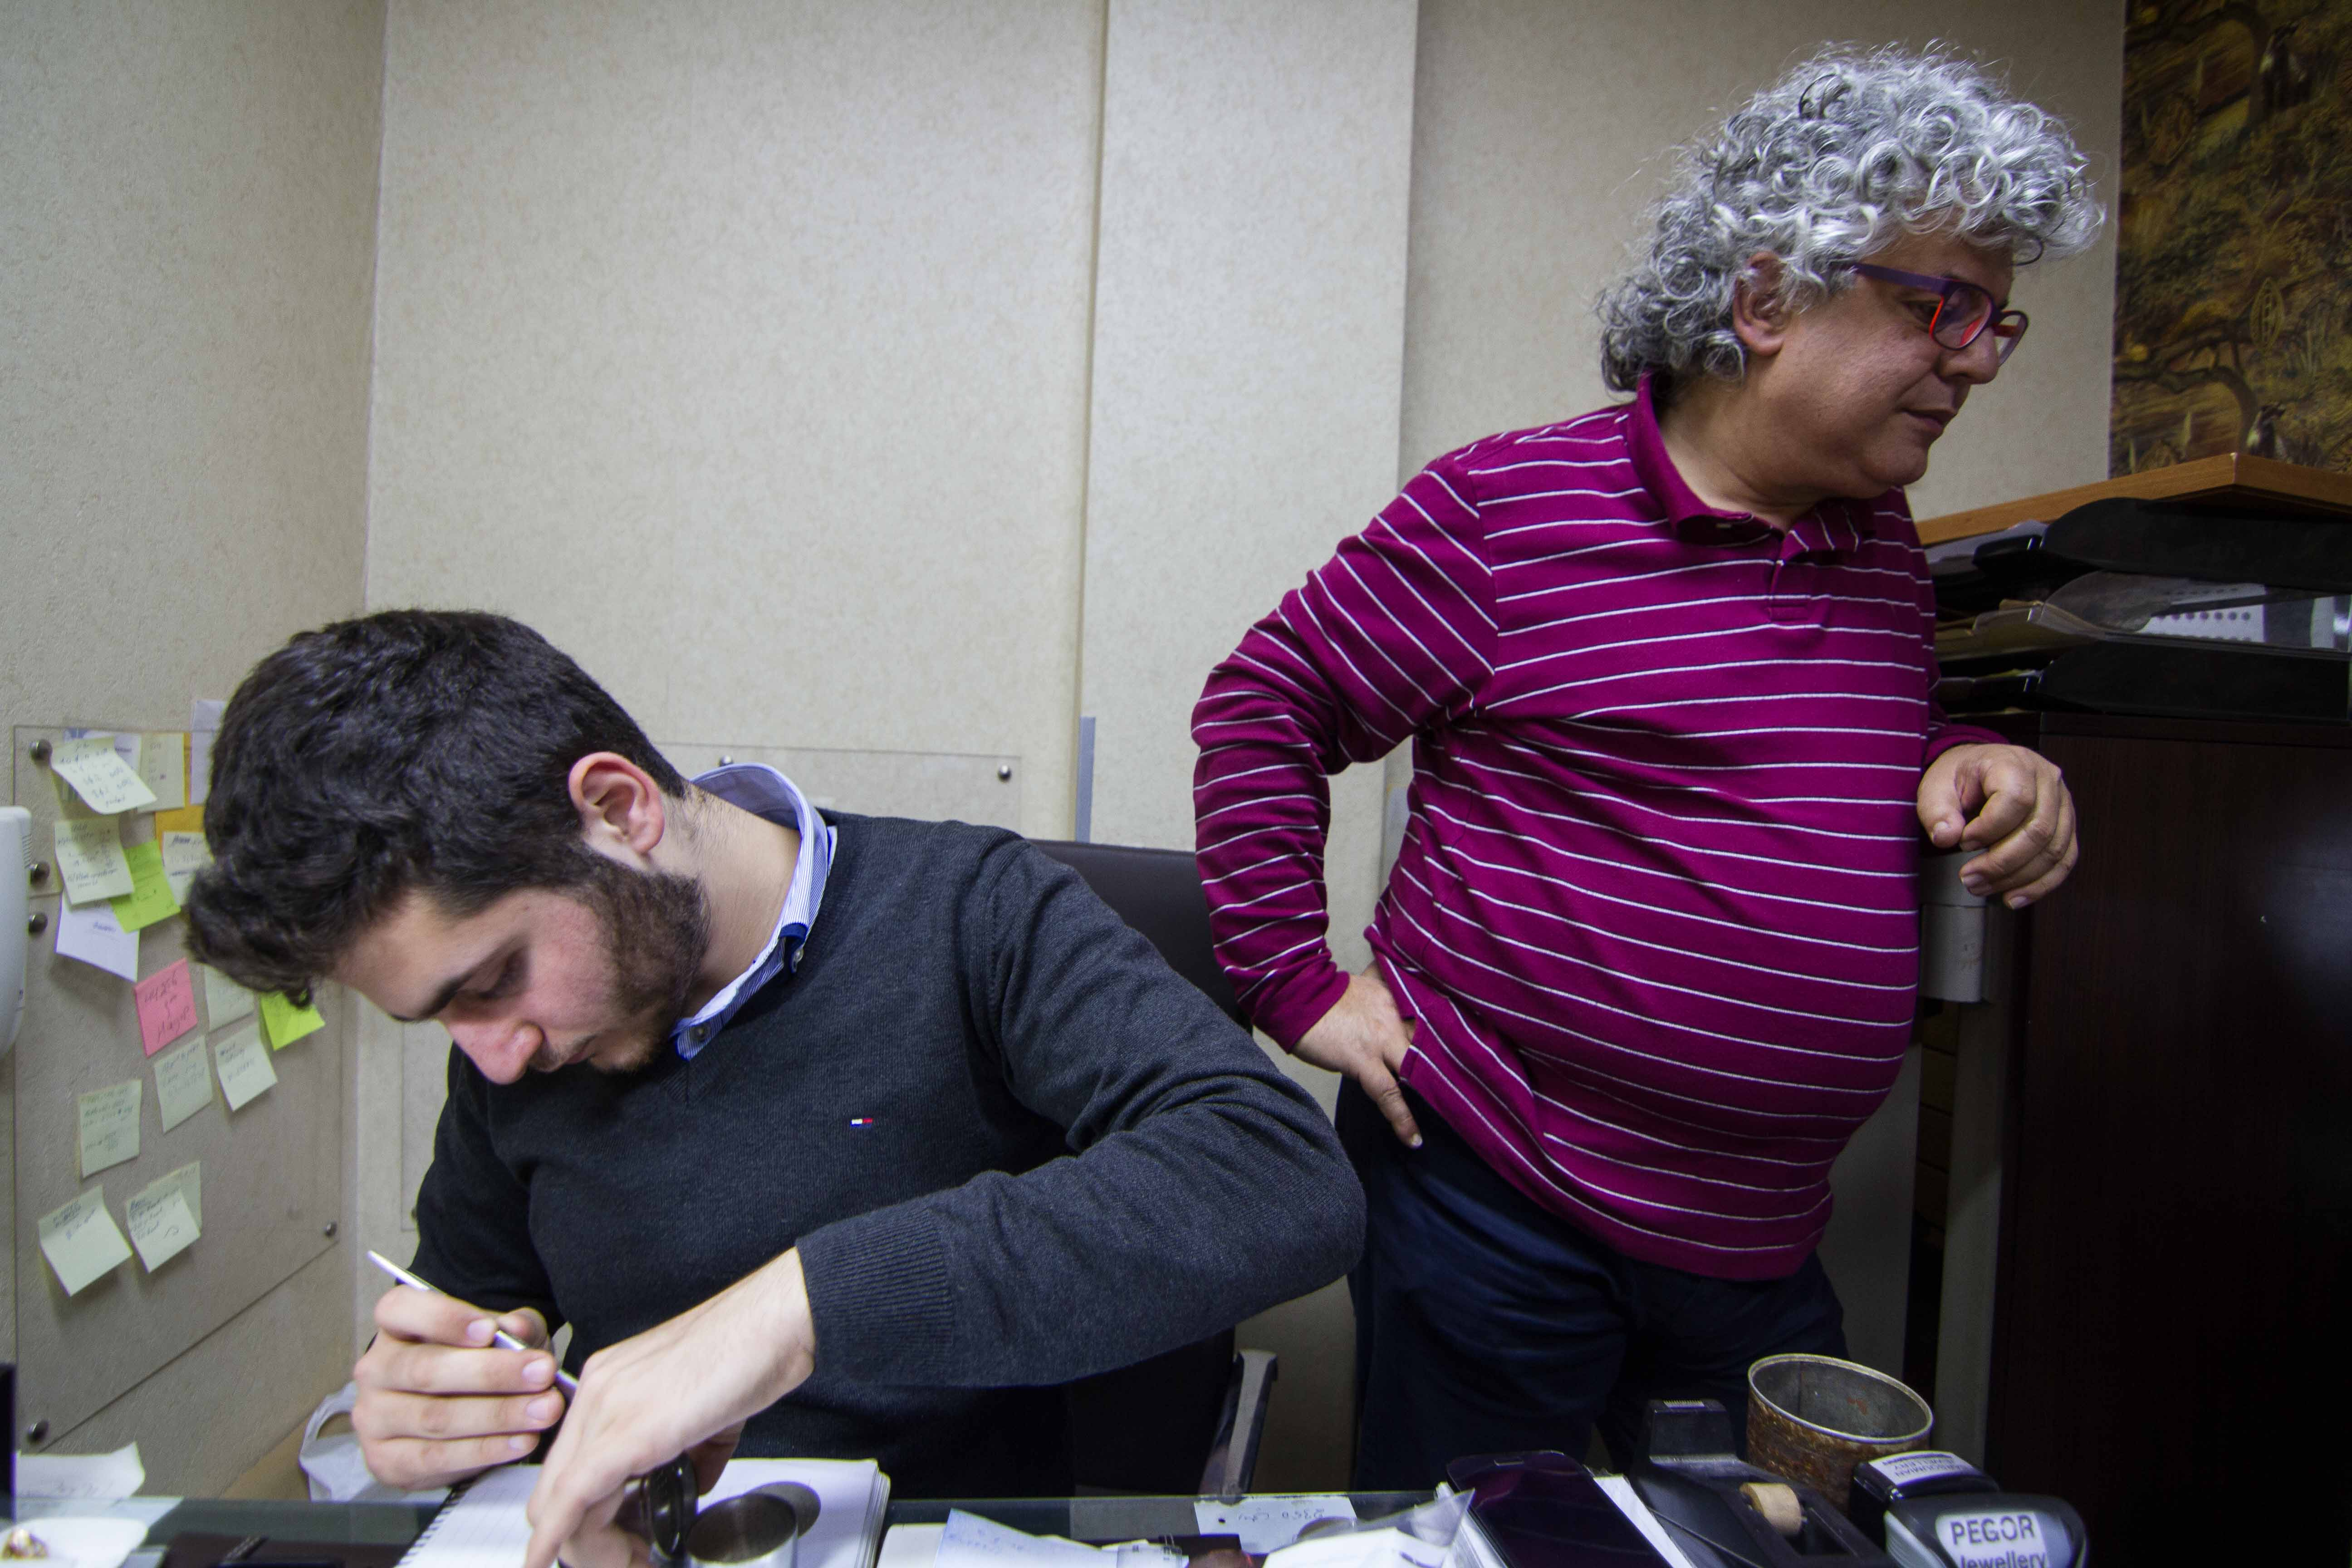 Khajag Barsoumian, left, and his father, Sarkis, work in the family business, in Beirut, Lebanon, Feb. 26, 2016. Unlike many of the younger Armenian generation, 19-year-old Khajag has decided to follow in his father's footsteps.